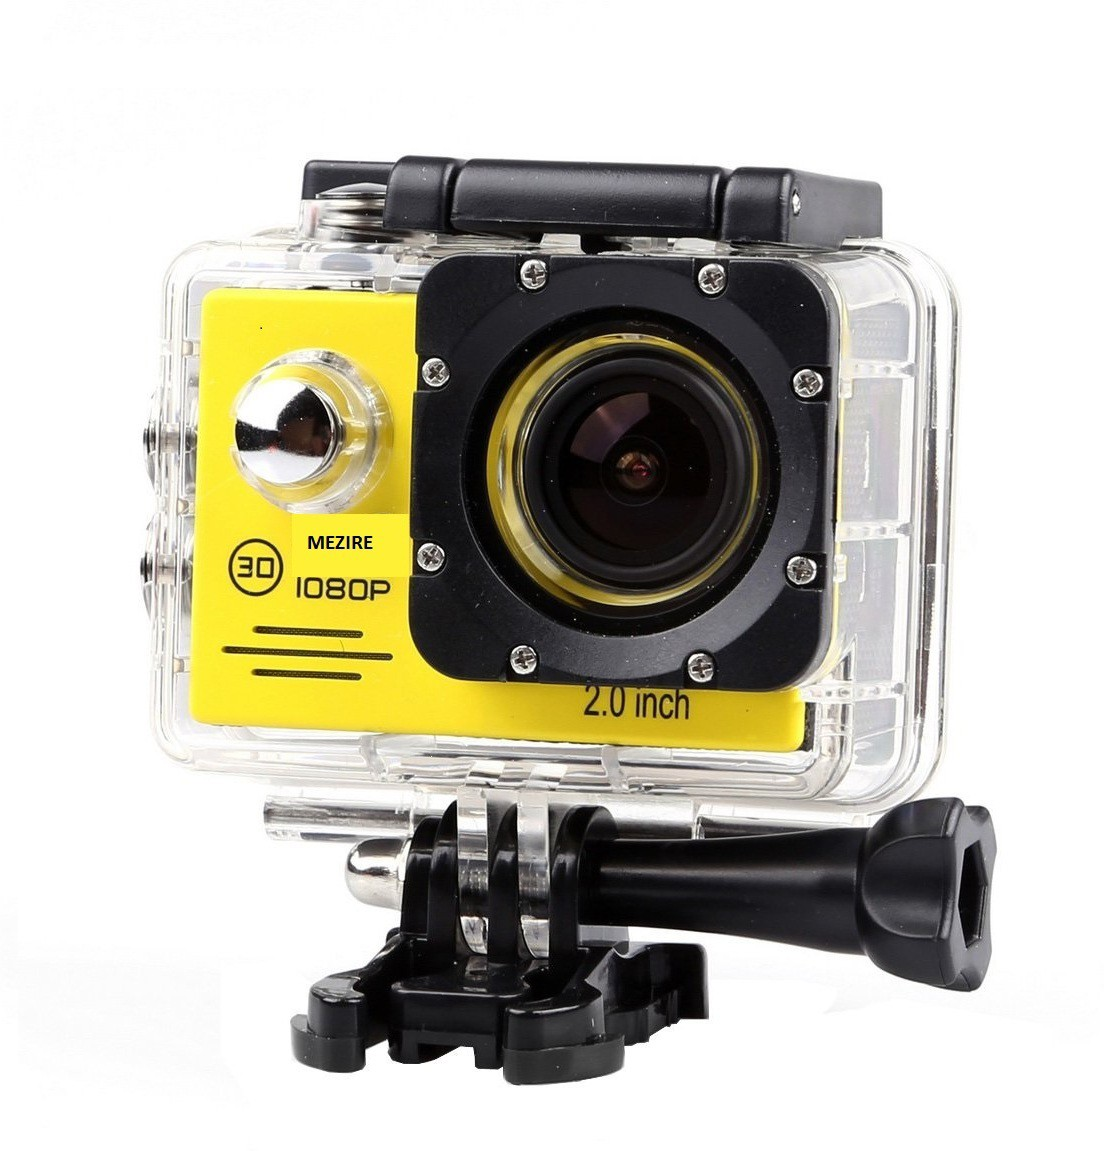 Mezire HD Adventure camera (04) gold 130 degree wide lens Sports & Action Camera(Yellow)